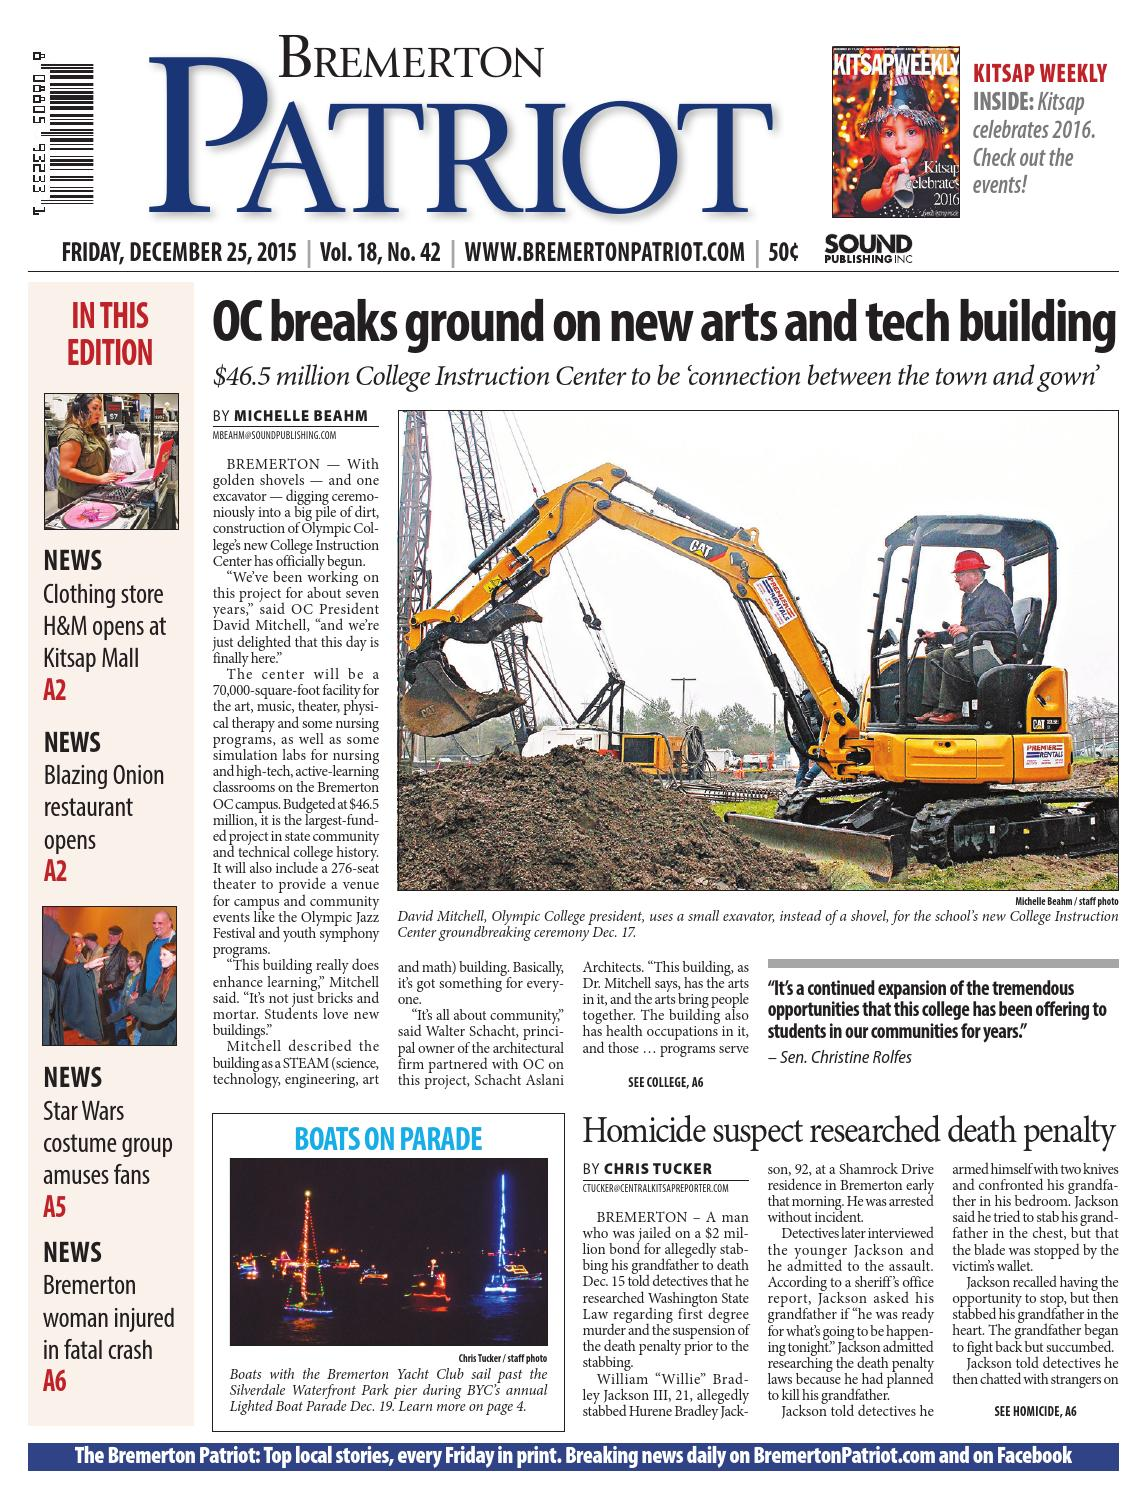 bremerton patriot, december 25, 2015 by sound publishing - issuu